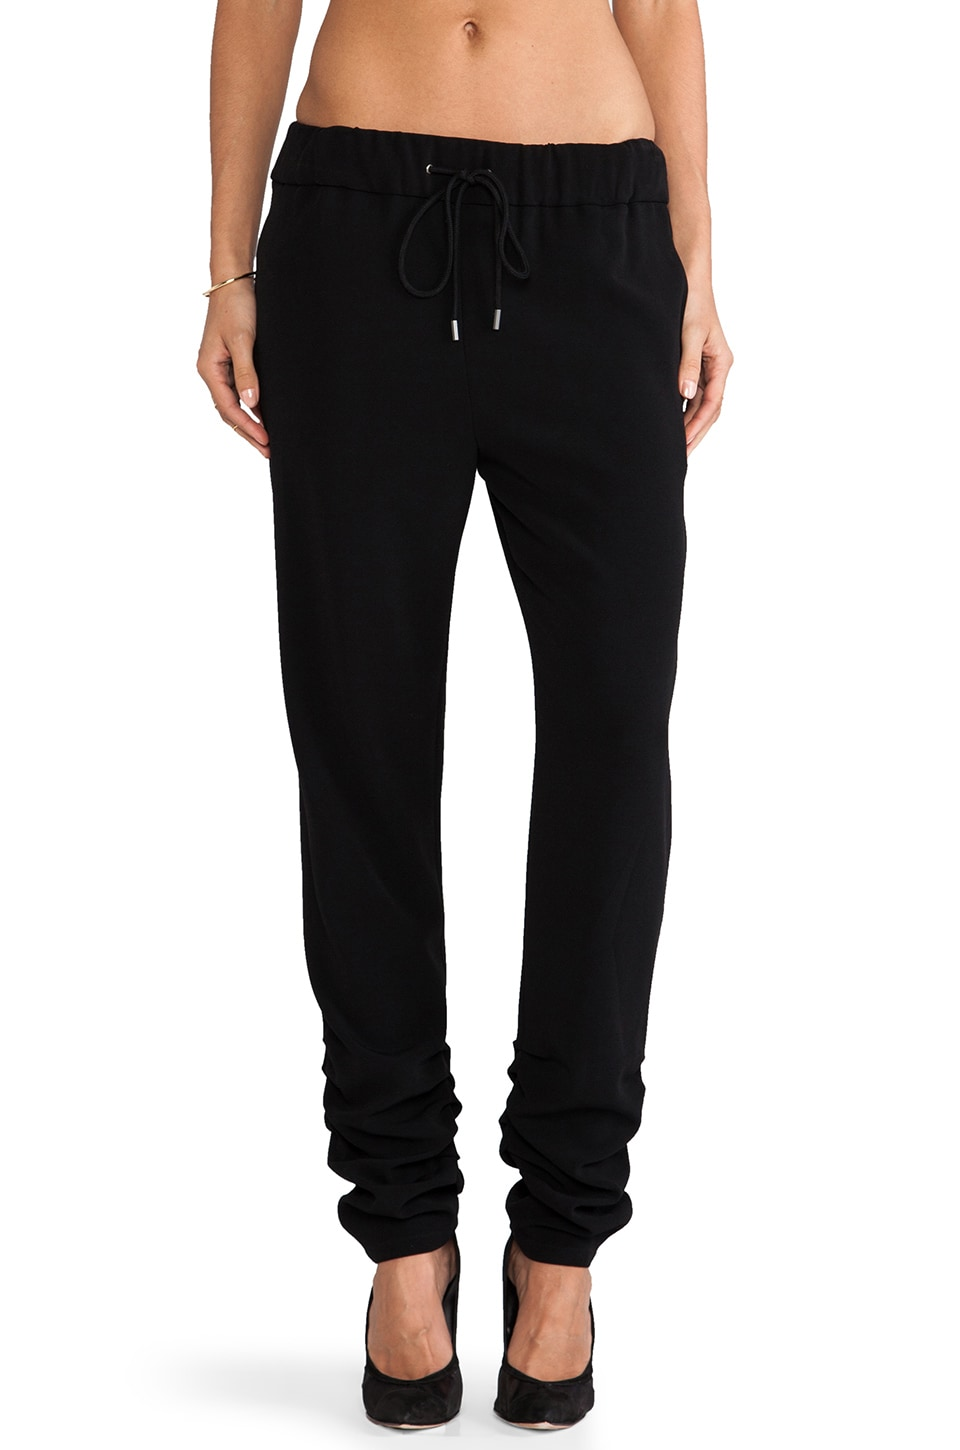 DEREK LAM 10 CROSBY Ruched Ankle Track Pant in Black